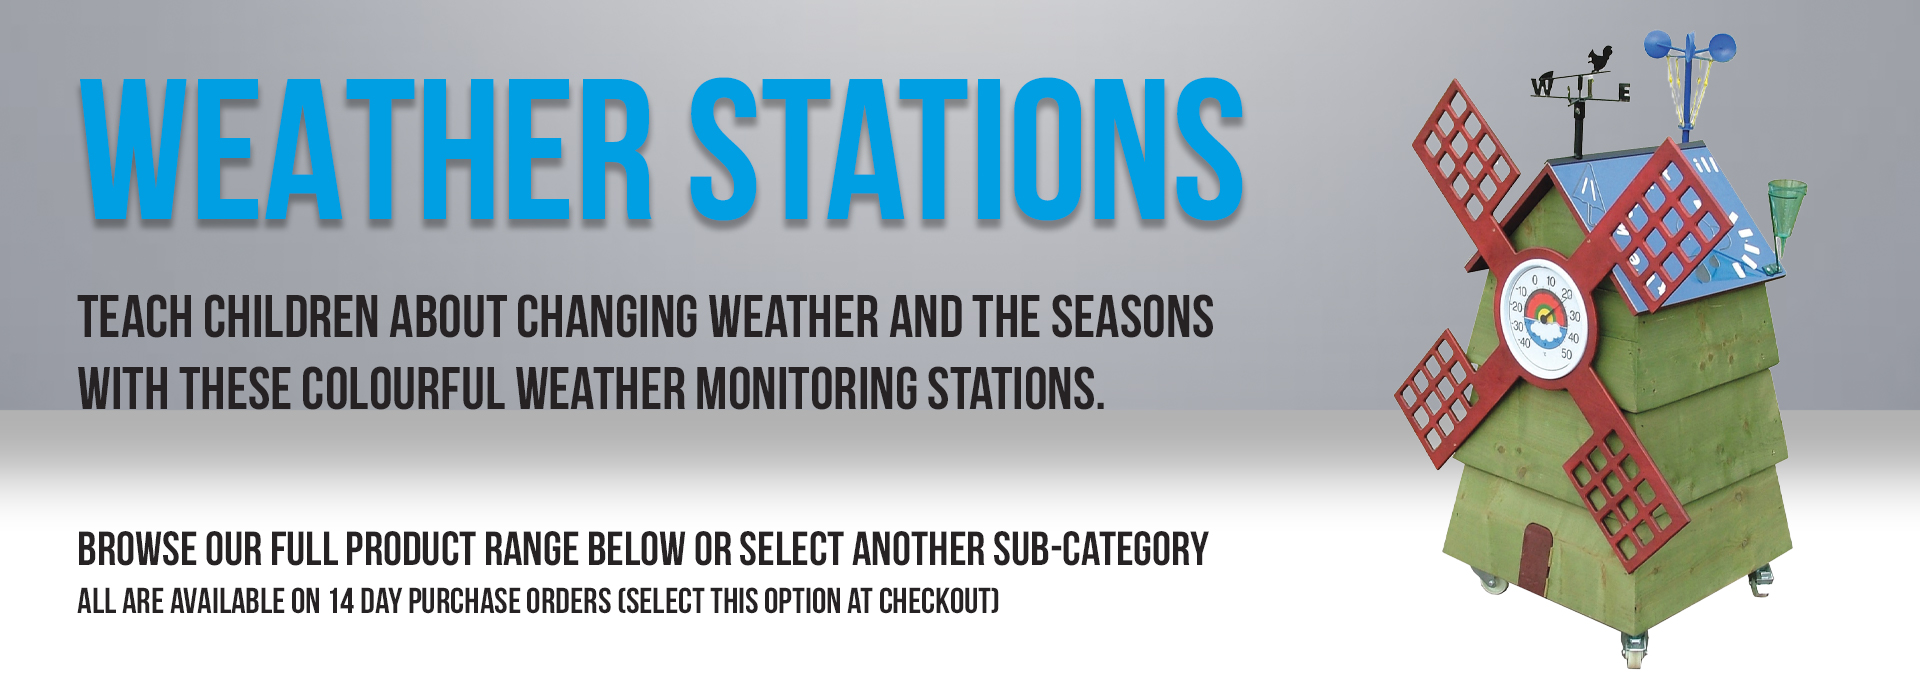 weather-stations-banner.jpg